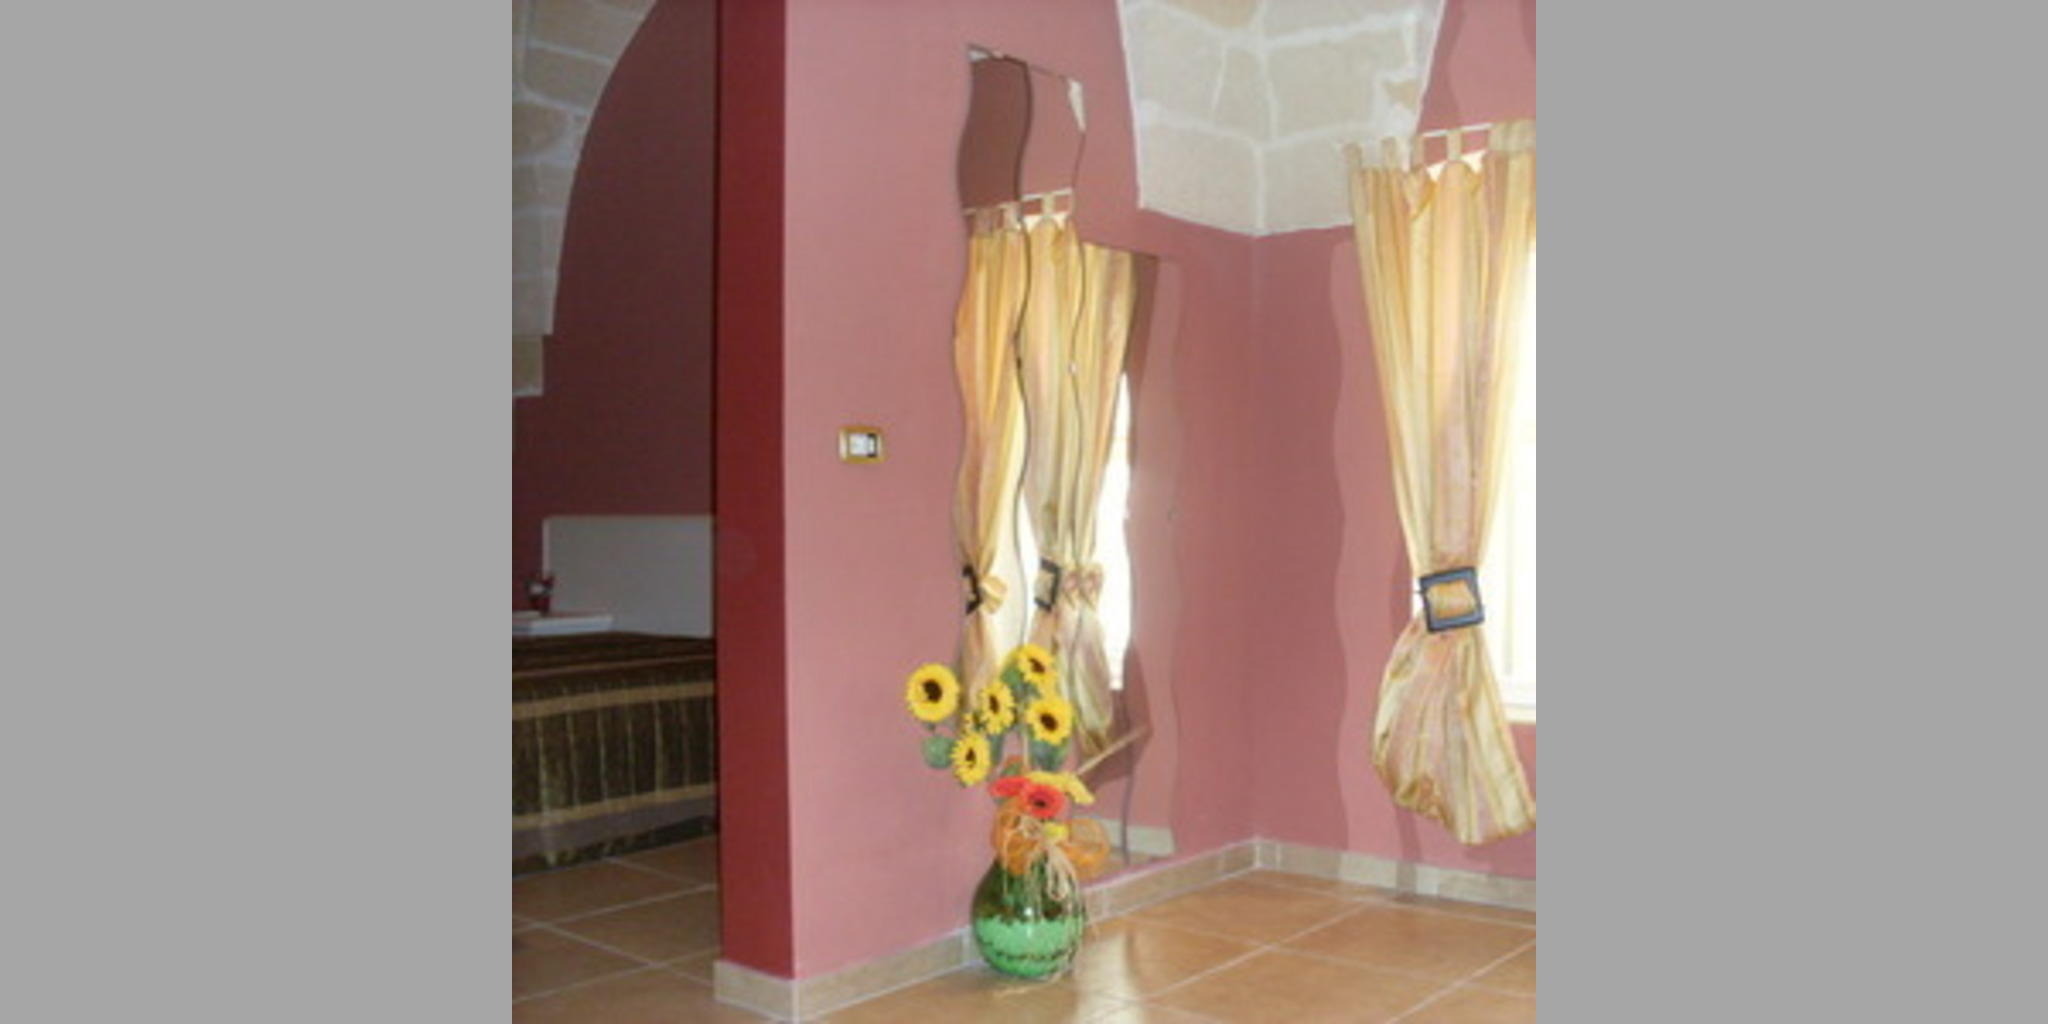 Bed & Breakfast Crispiano - Crispiano 2